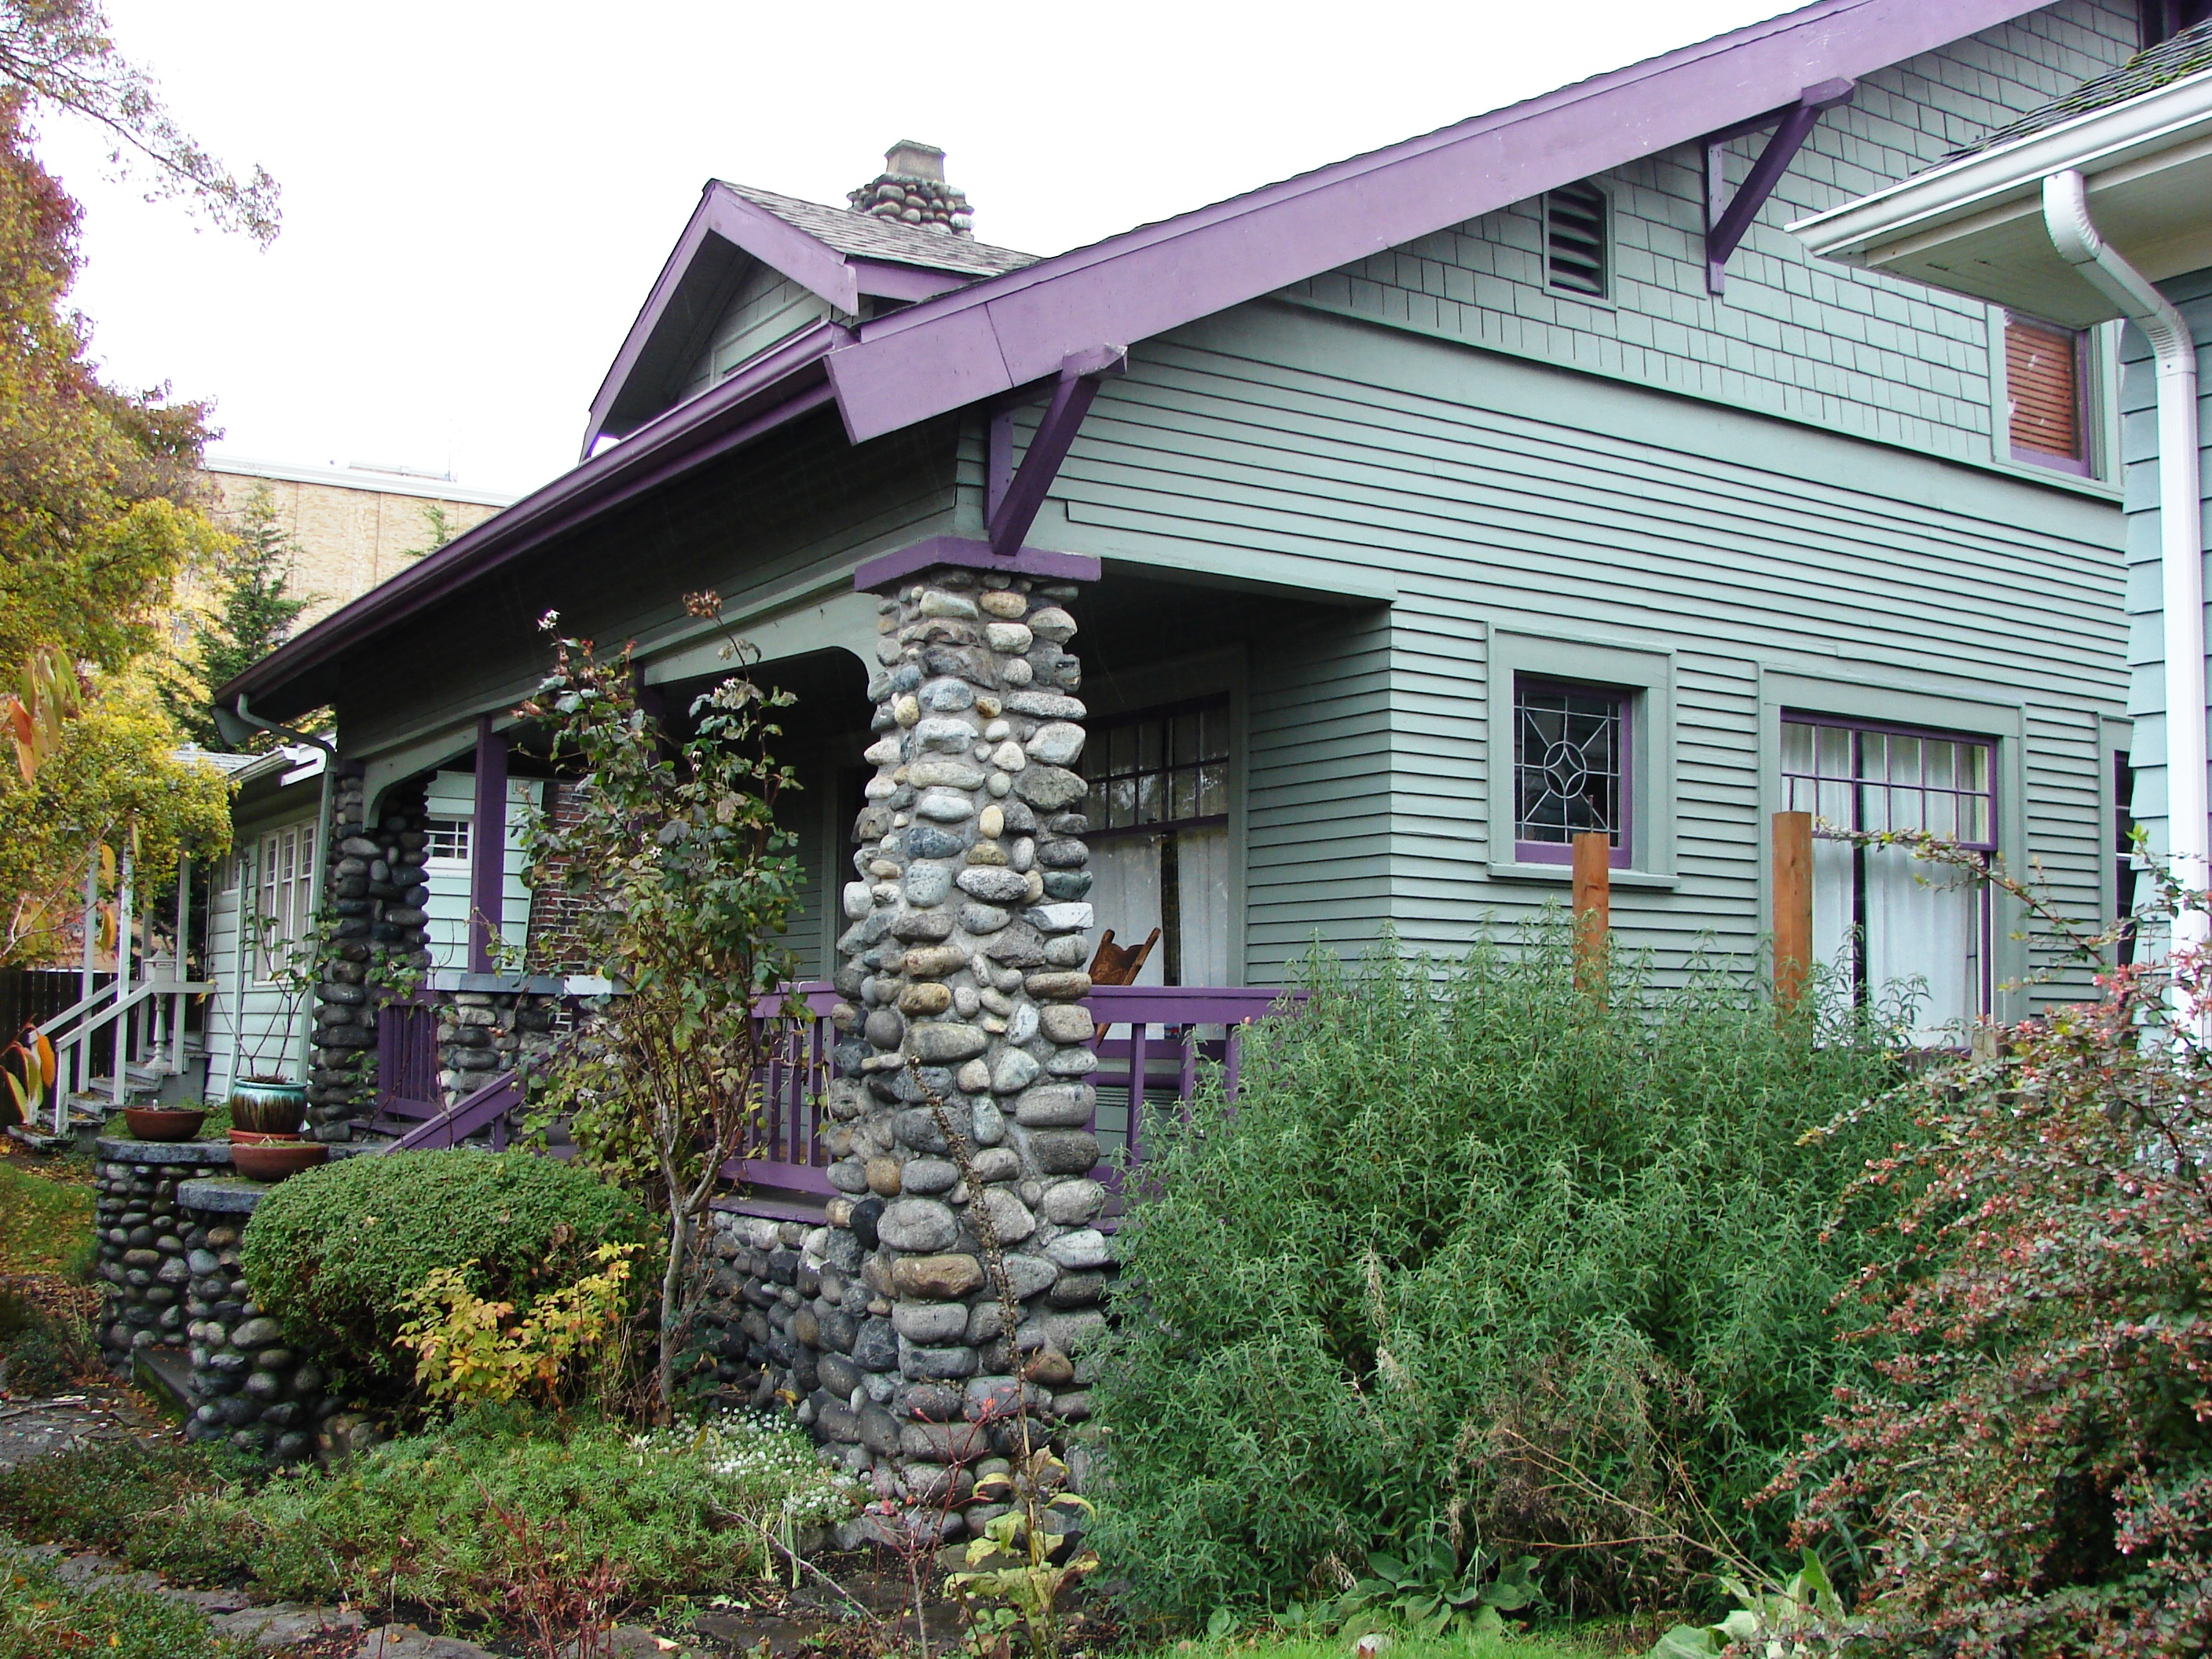 This Craftsman House Built In 1911 Shows The Influence Of Arts And Crafts Movement